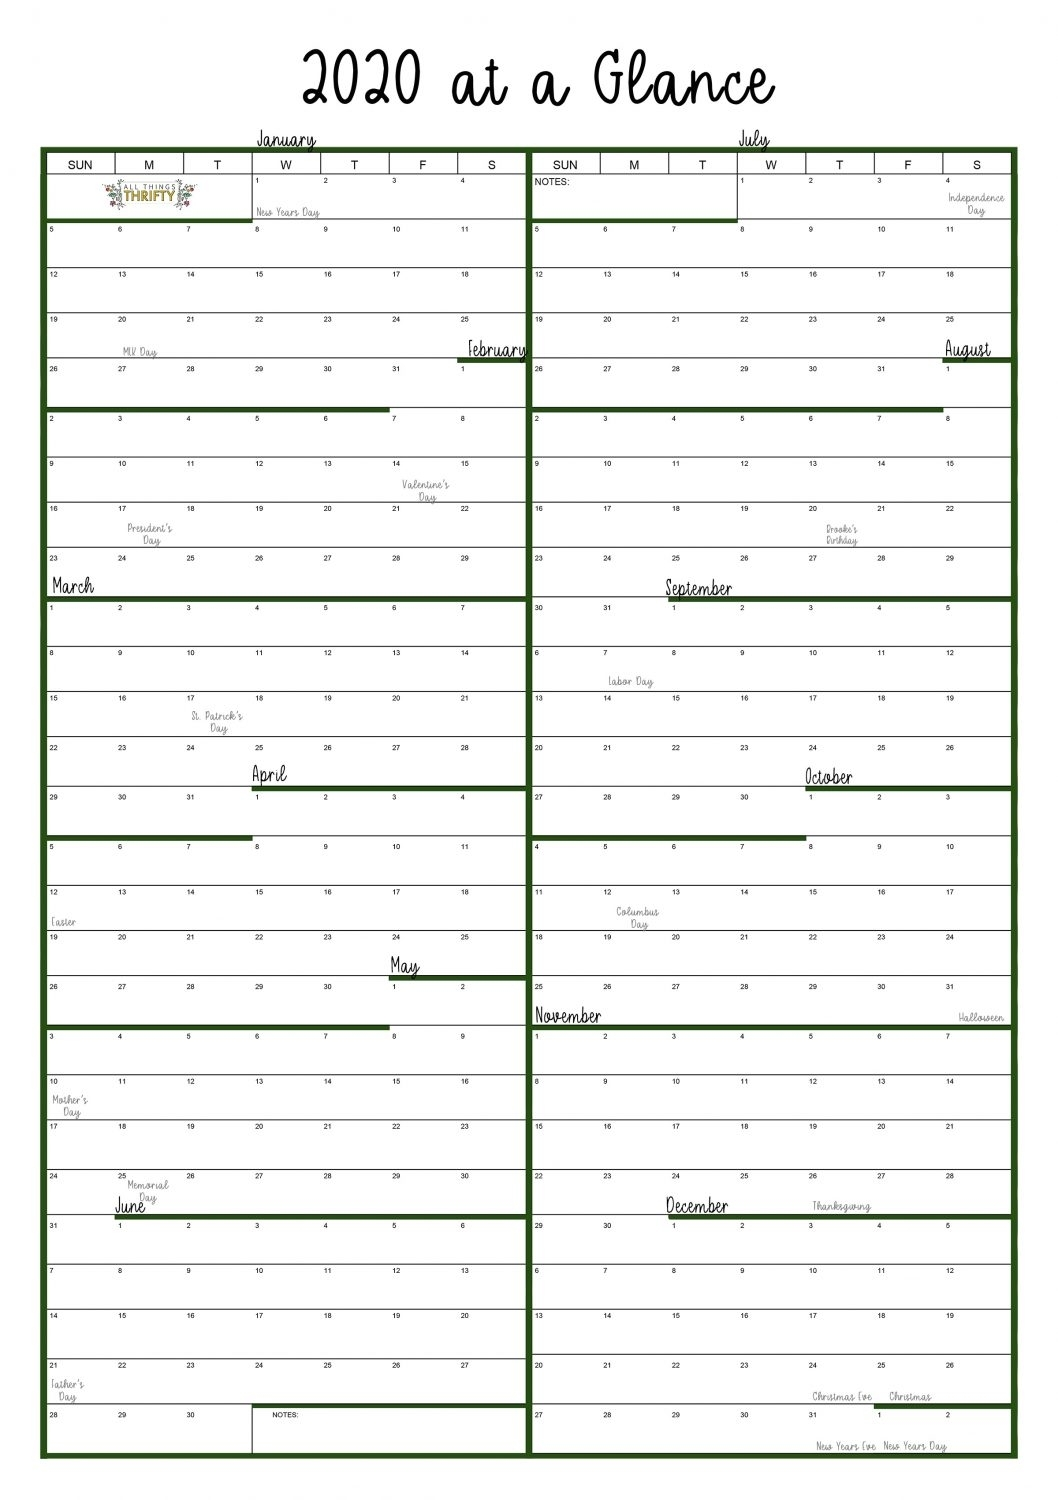 Year At A Glance Free Printable Calendar | All Things Thrifty with regard to 2020 Calender At A Glance Free